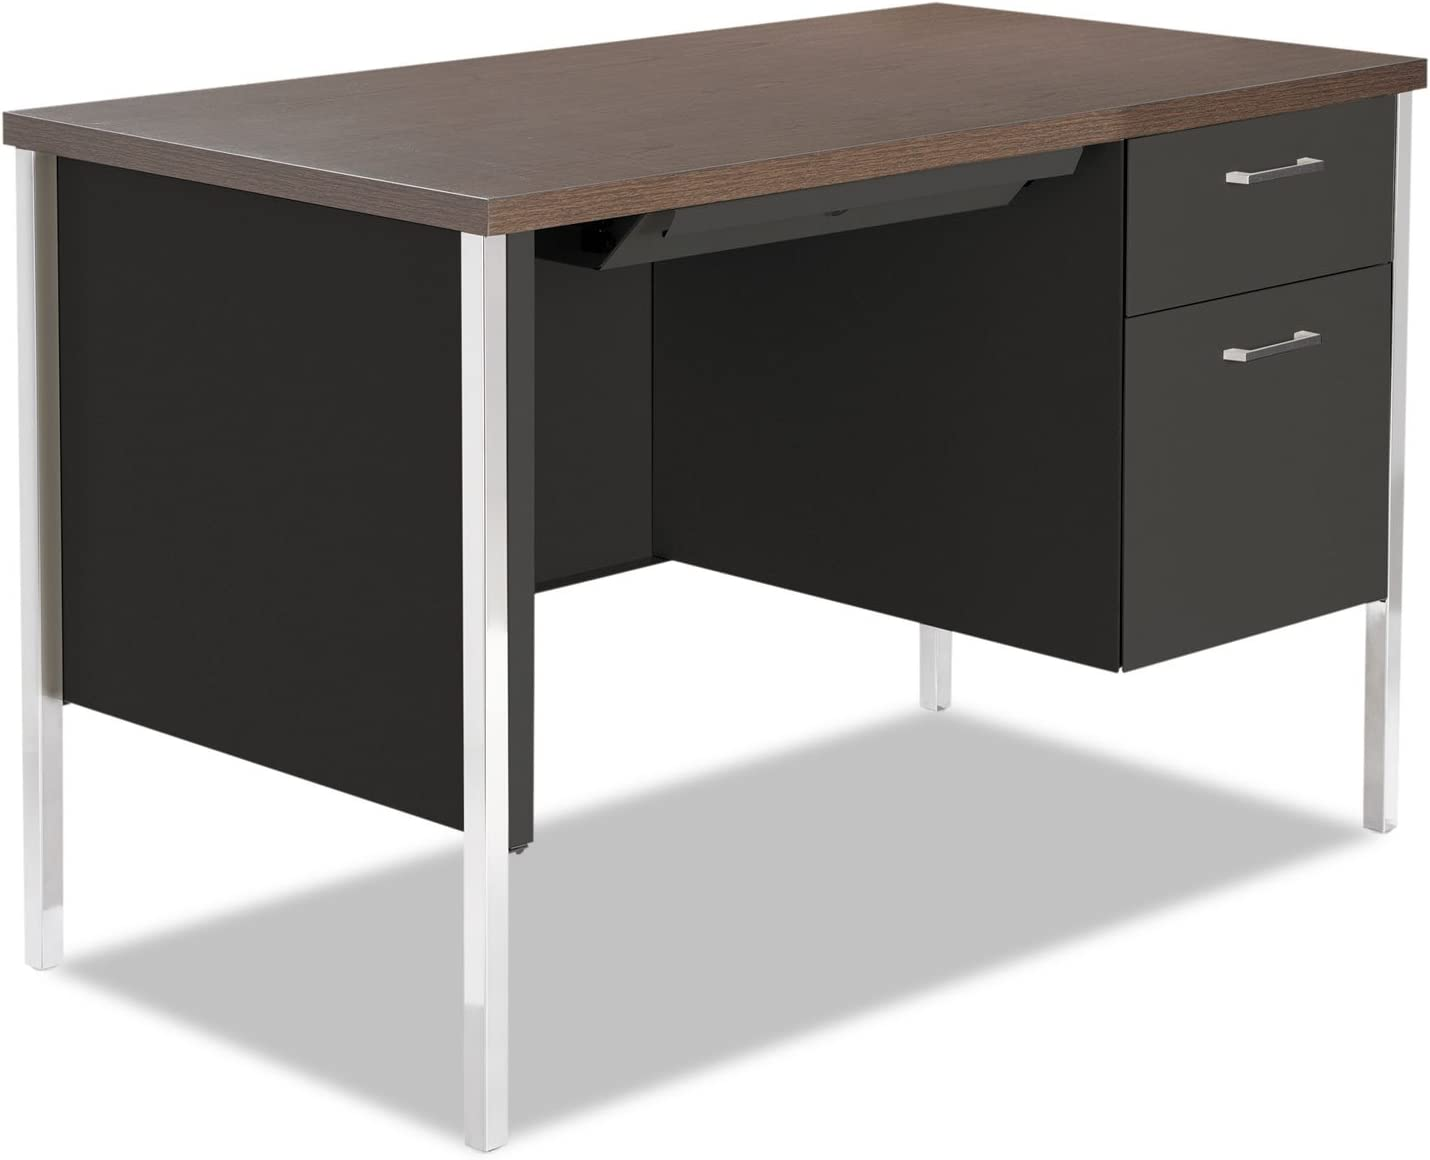 Alera SD4524BW Single Pedestal Steel Desk, Metal Desk, 45-1 4w X 24d X 29-1 2h, Walnut Black